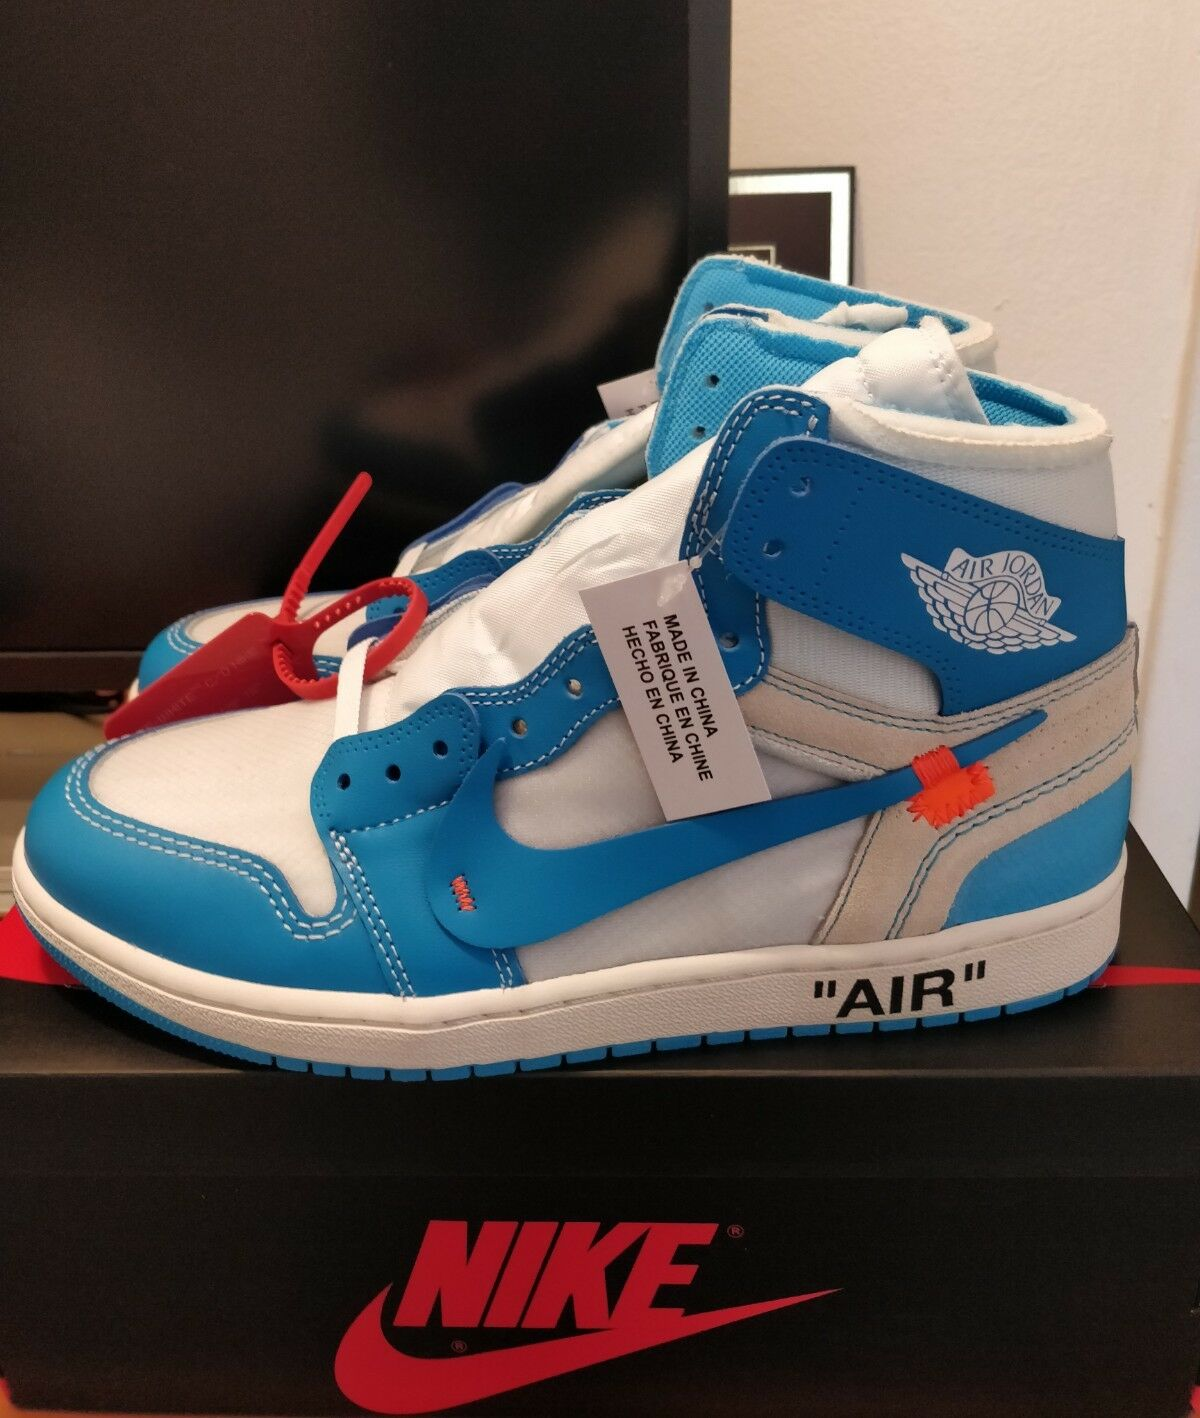 Off-White Air Jordan 1 Retro High OG UNC Sz 9 AQ0818-148 Off white Virgil Abloh